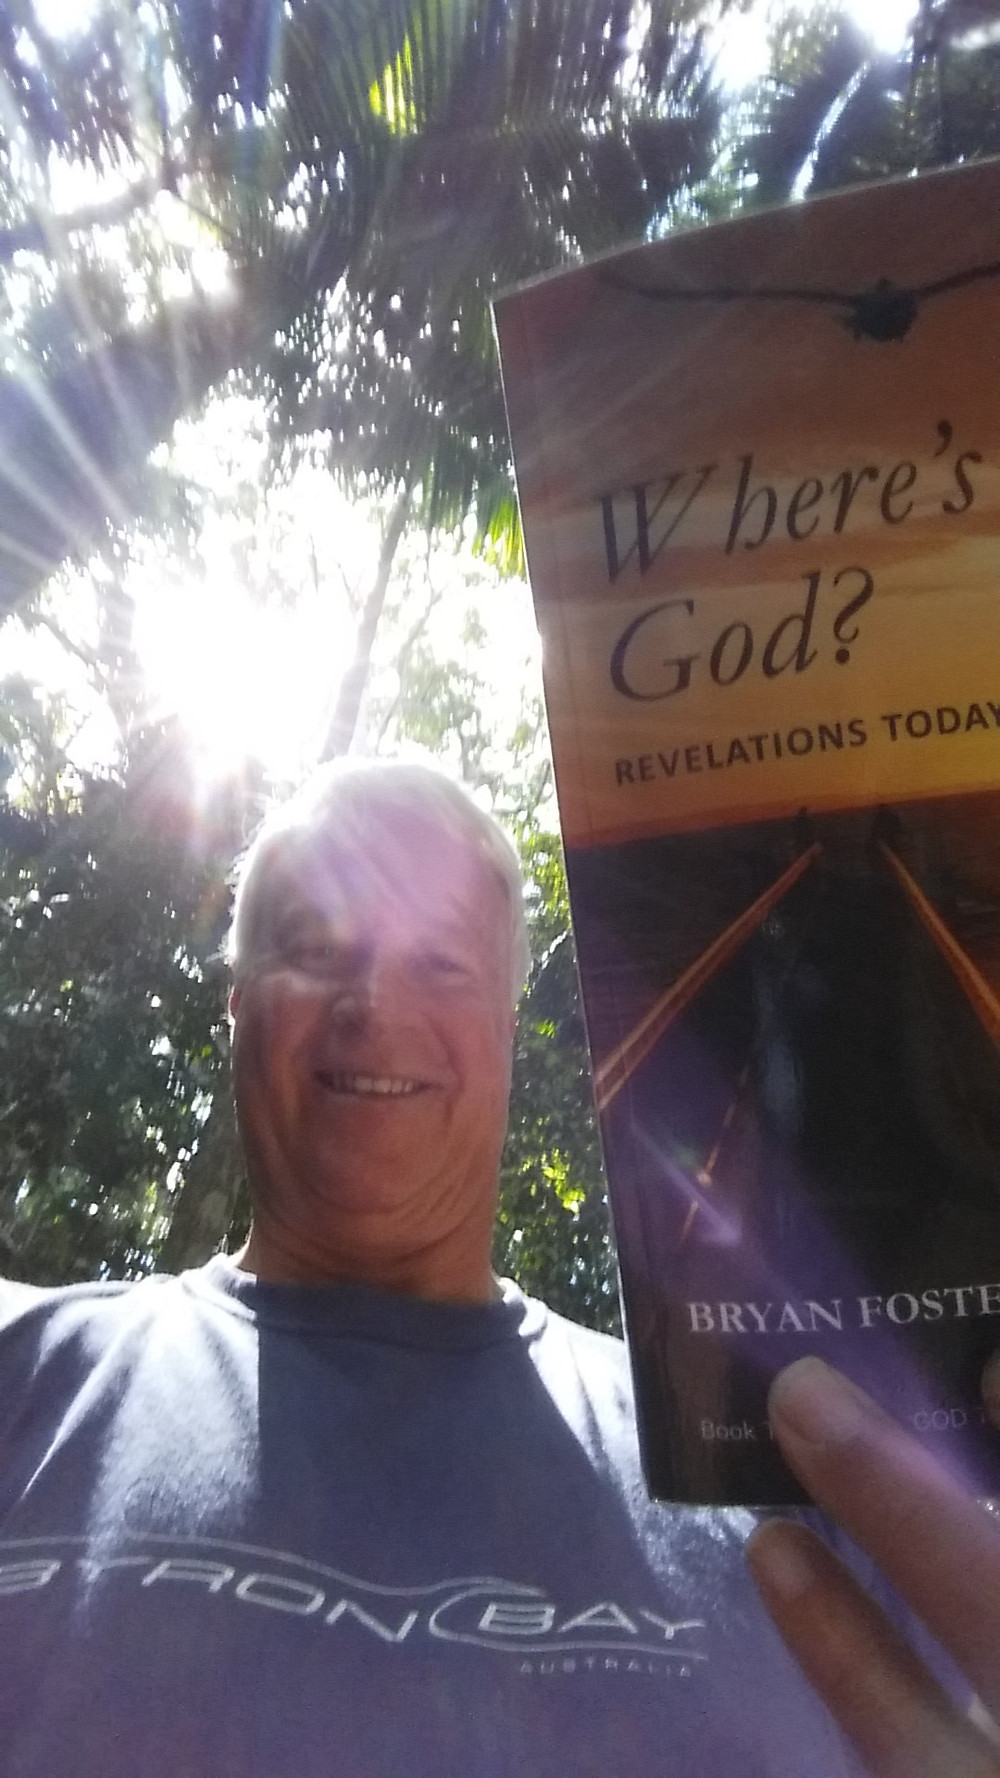 Bryan Foster releasing 'Where's God? Revelations Today' at Mt Warning Wollumbin.